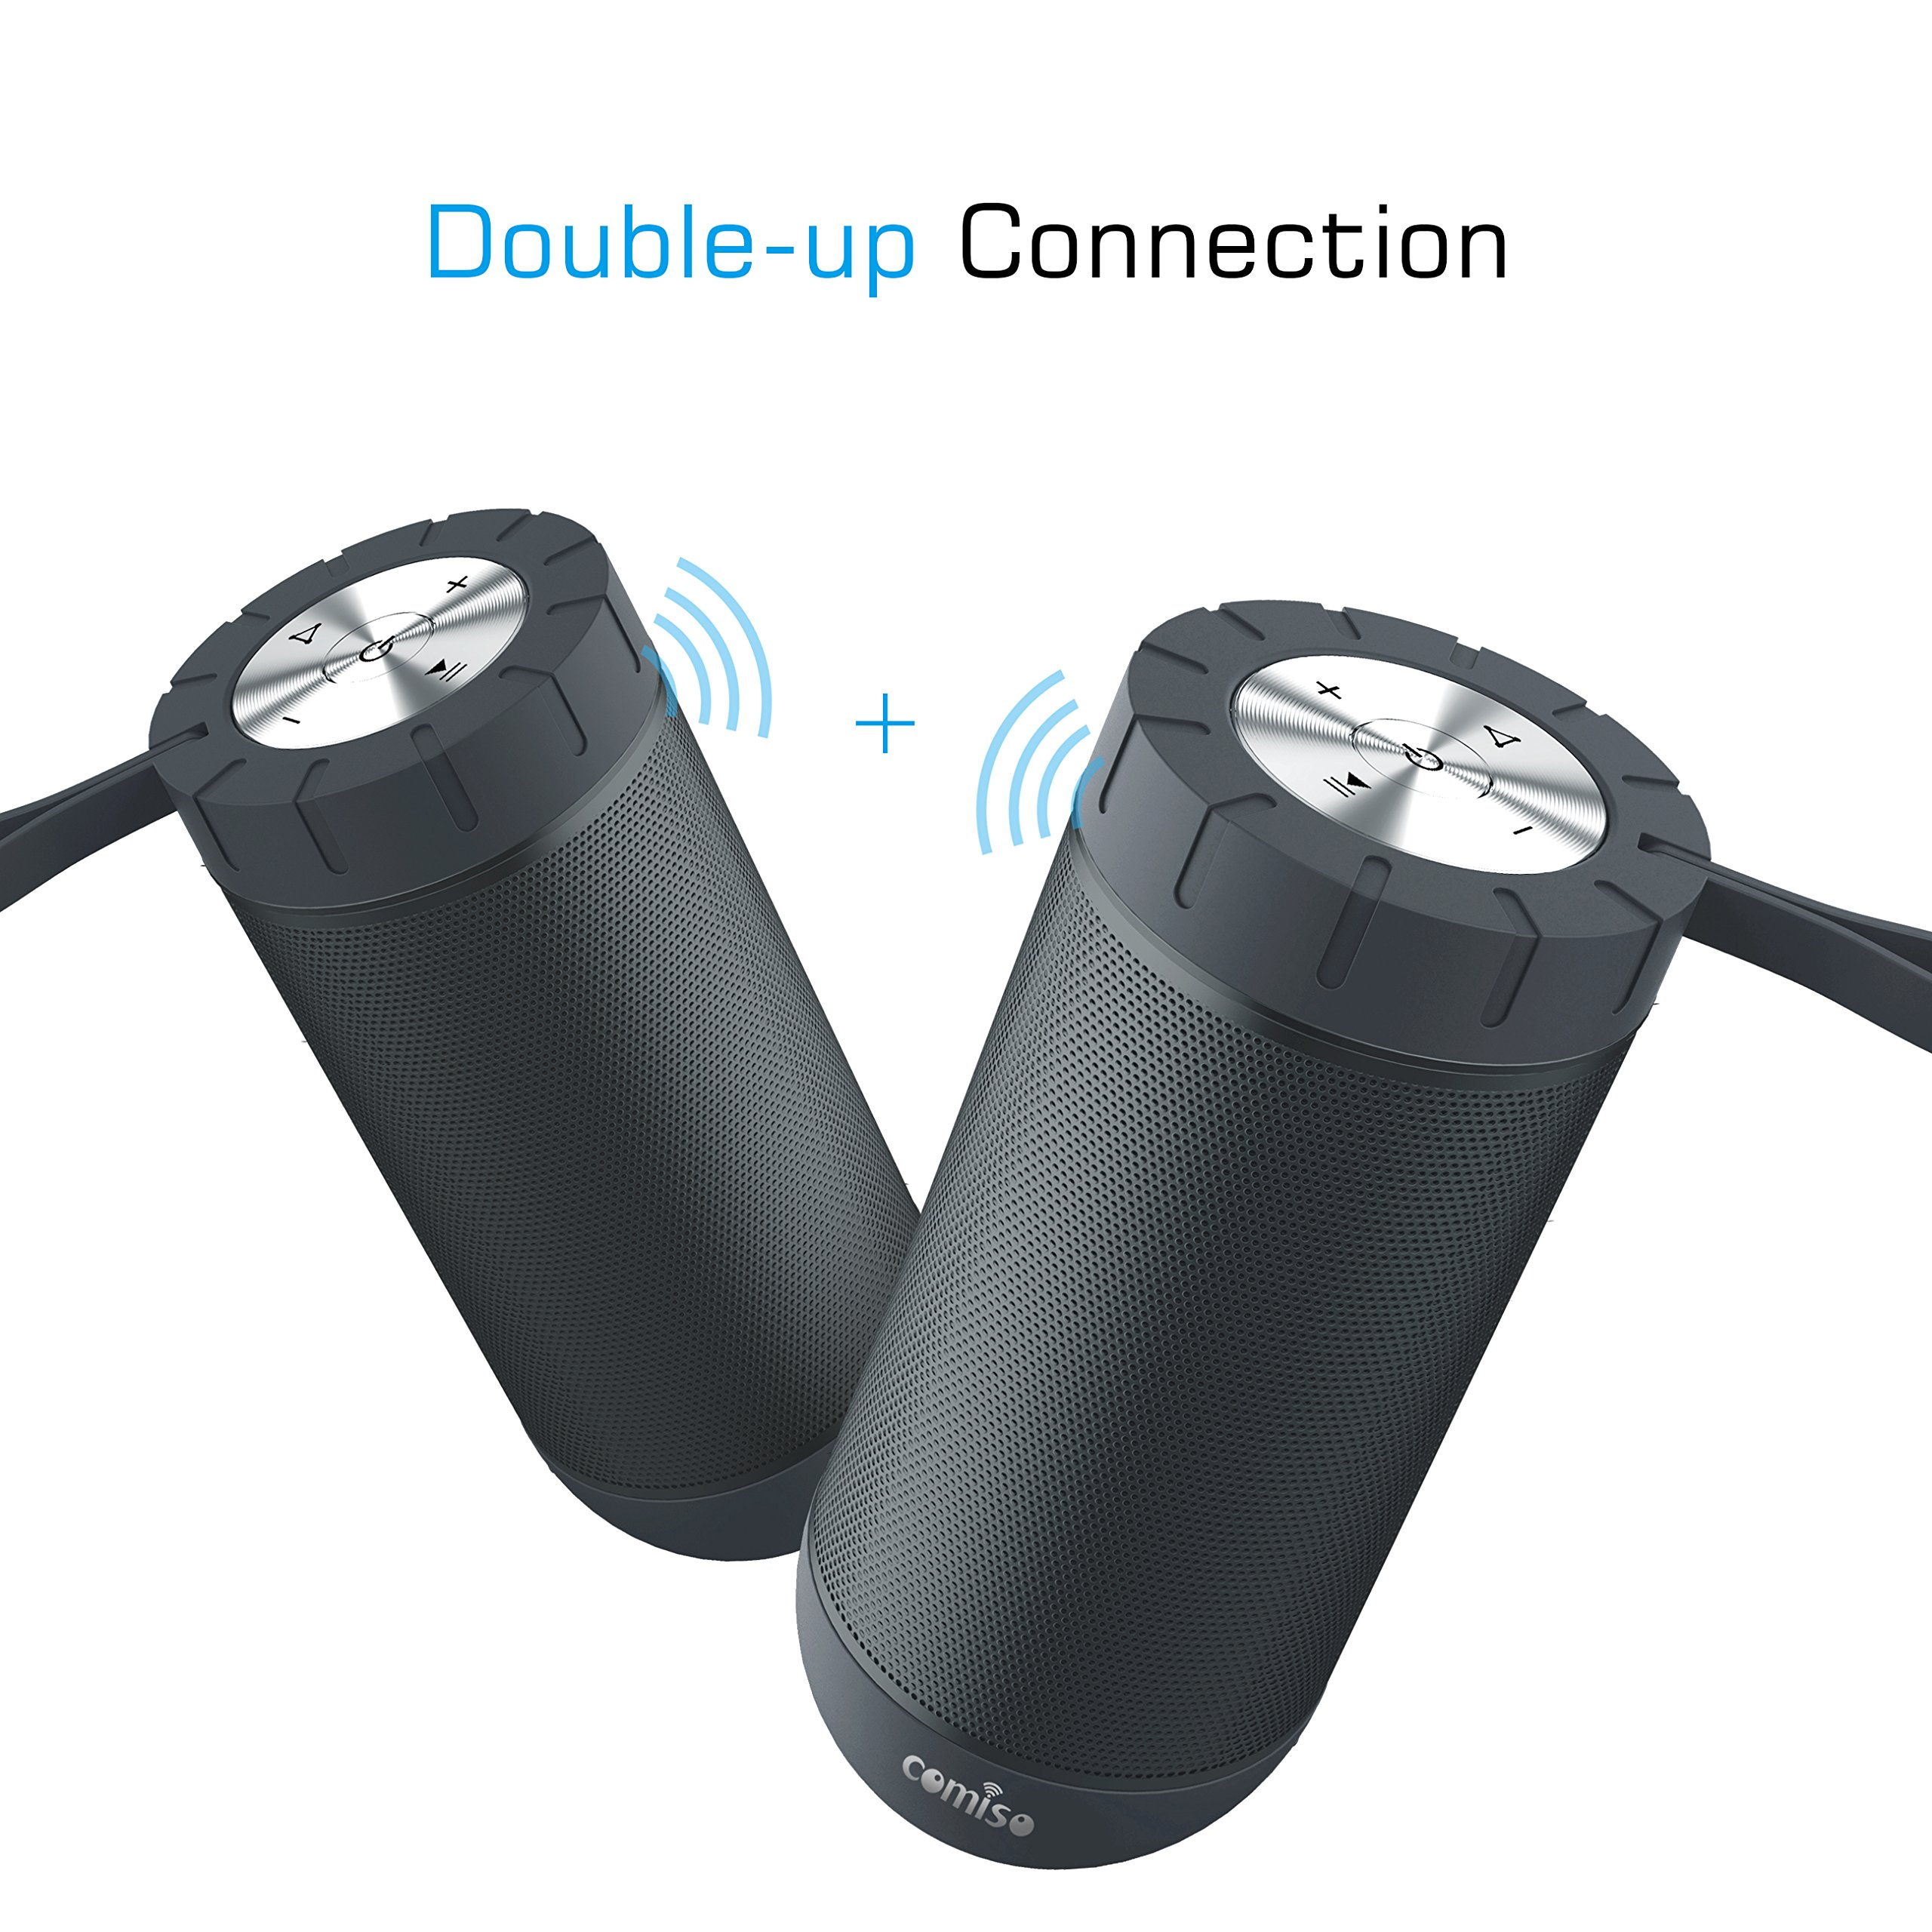 COMISO Waterproof Bluetooth Speakers Outdoor Wireless Portable Speaker with 24 Hours Playtime Superior Sound for Camping, Beach, Sports, Pool Party, Shower (Black) by COMISO (Image #5)